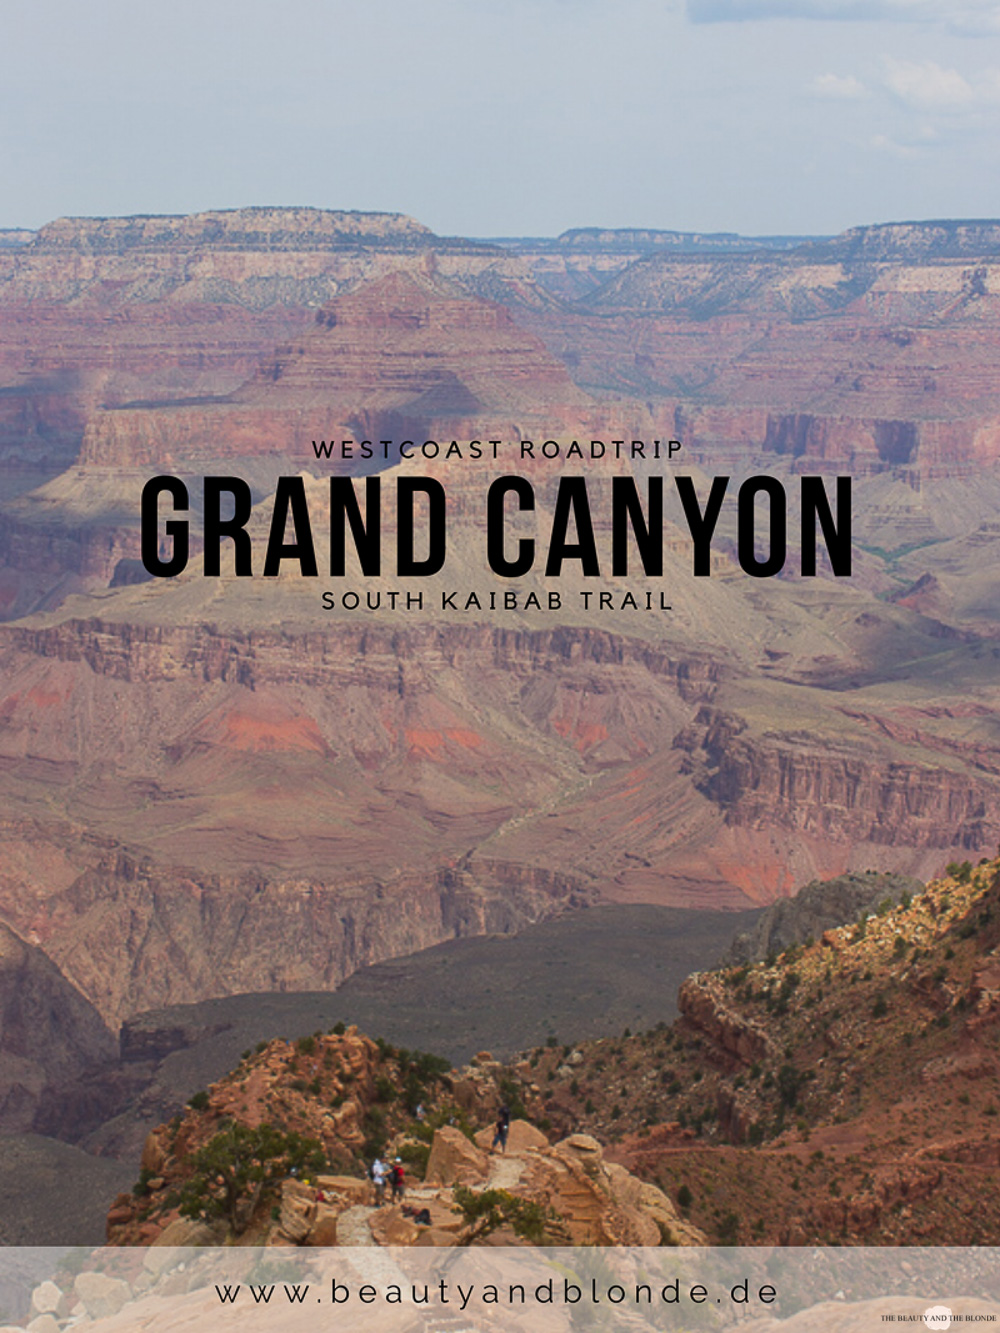 Westcoast Roadtrip Western USA Grand Canyon South Kaibab Trail Wandern Hiking